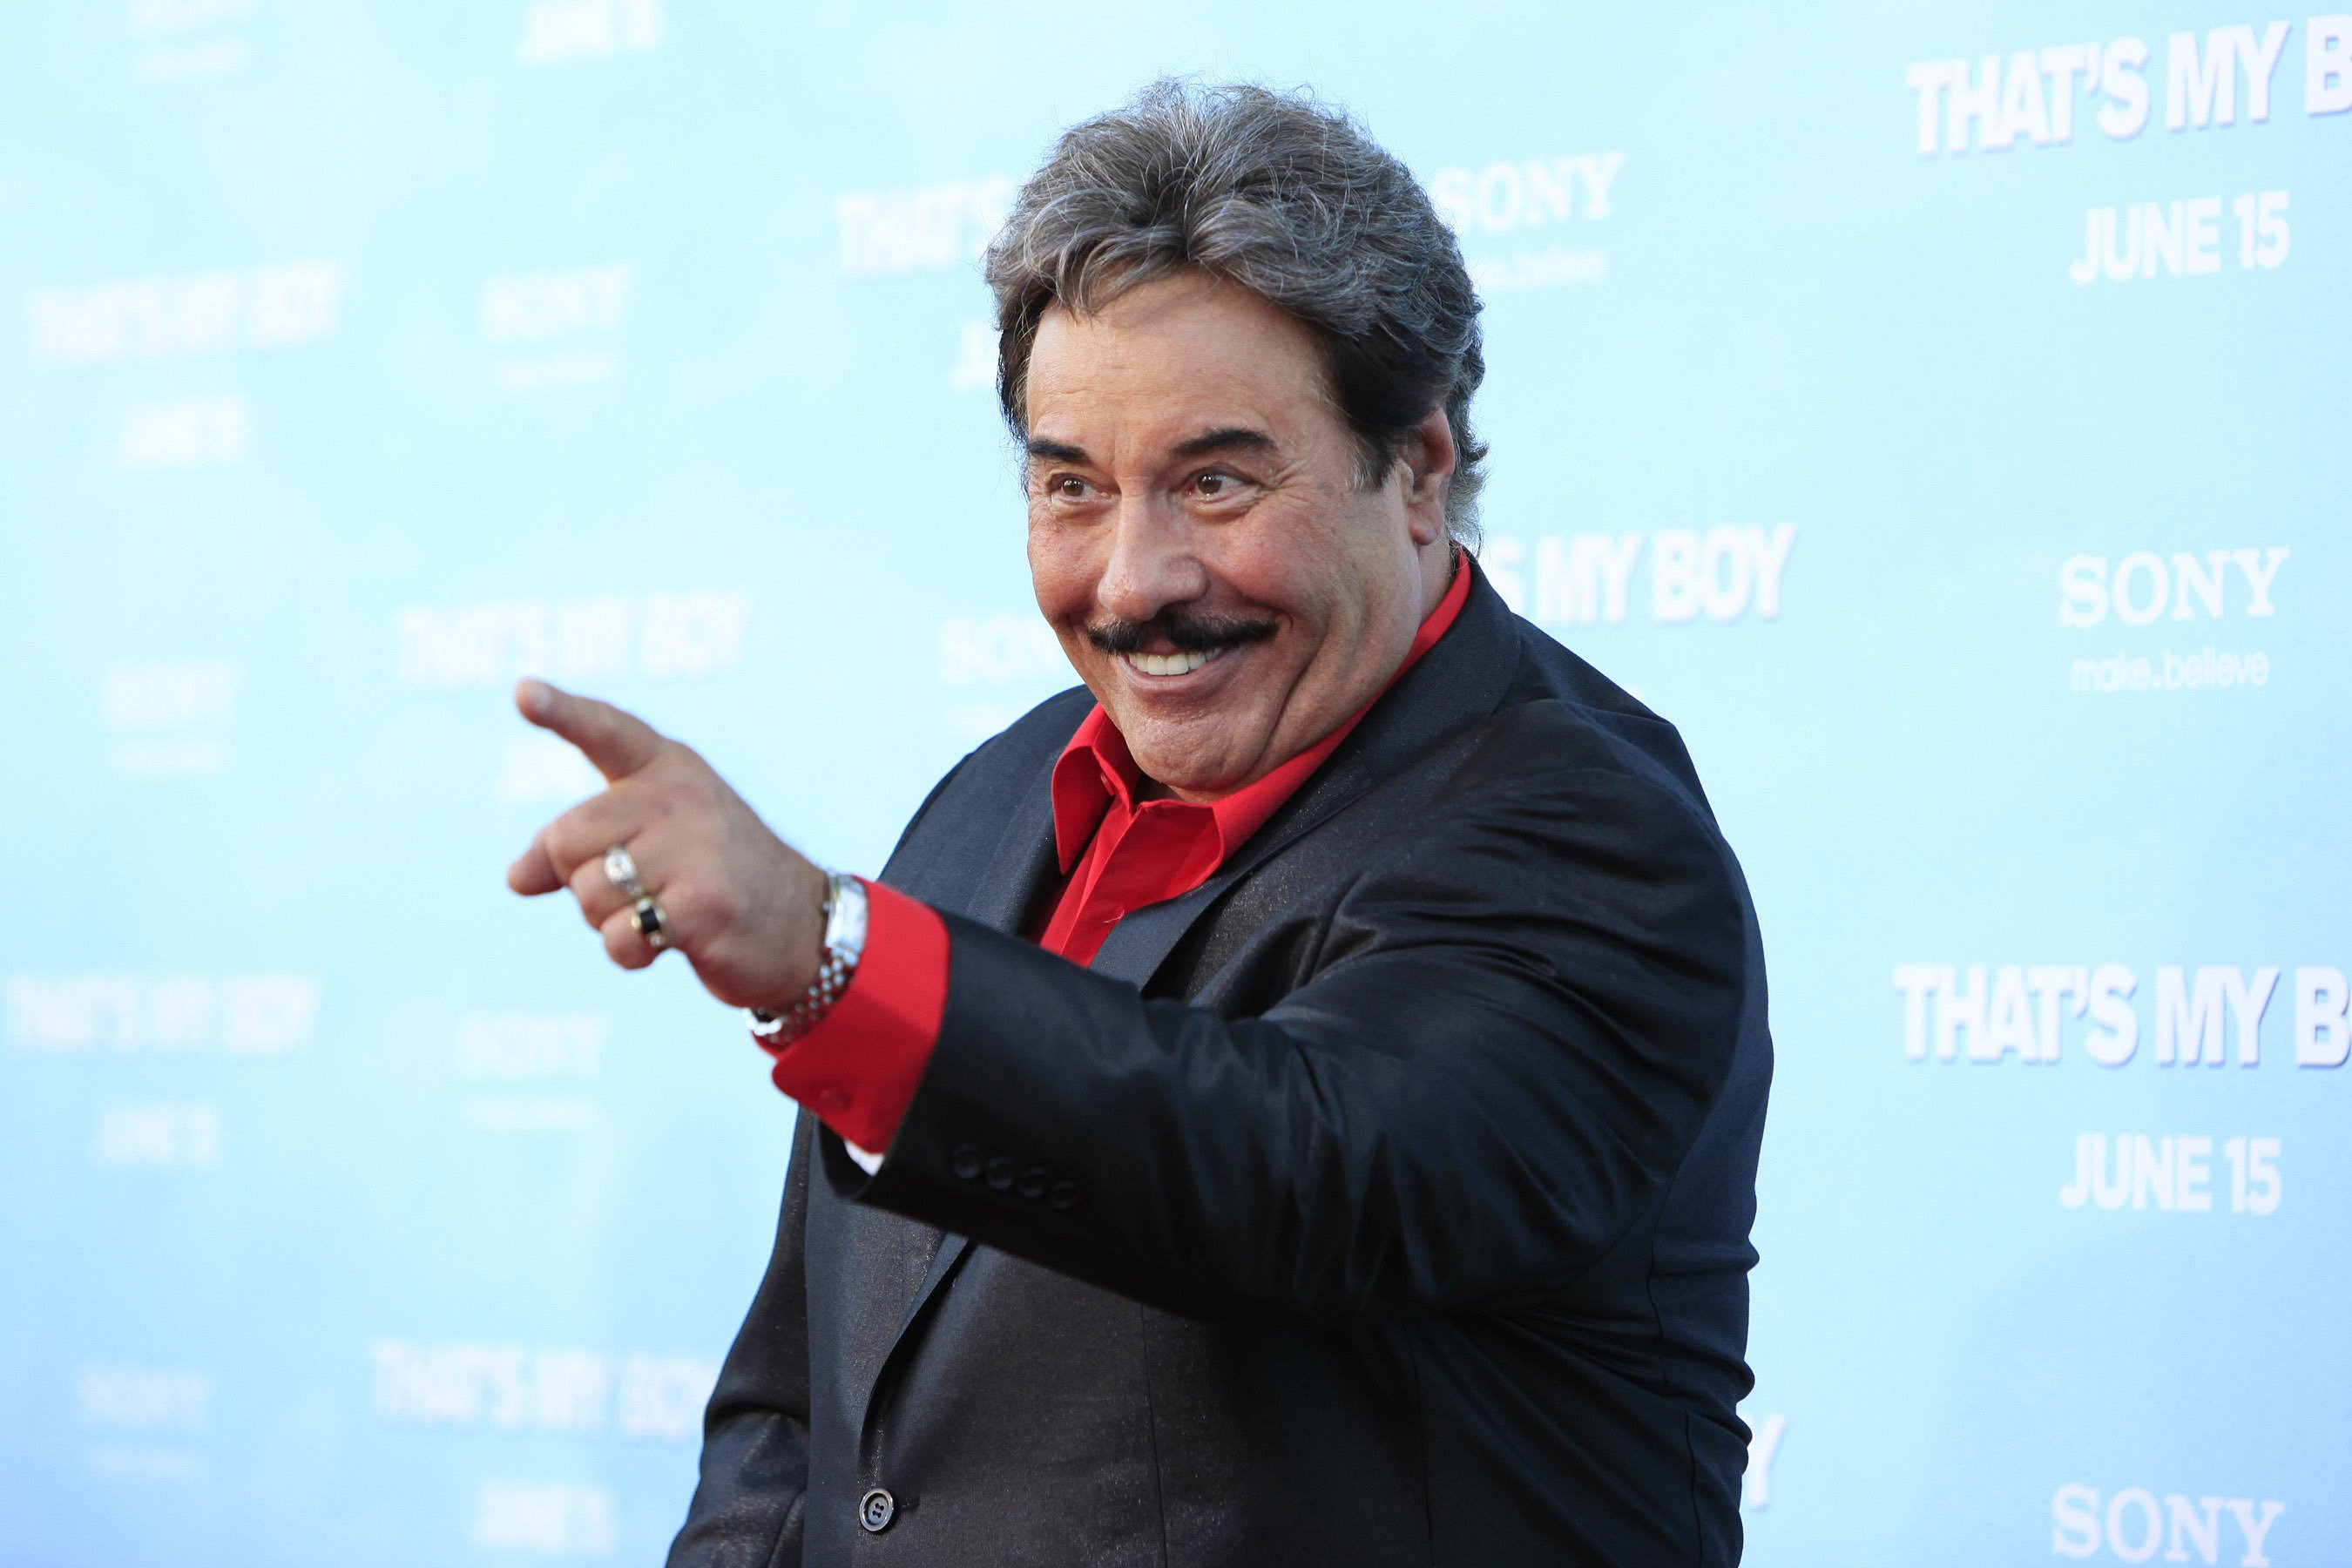 Tony Orlando at the premiere of Columbia Pictures' 'That's My Boy' at the Regency Village Theater on June 4, 2012 in Los Angeles, California | Photo: Shutterstock